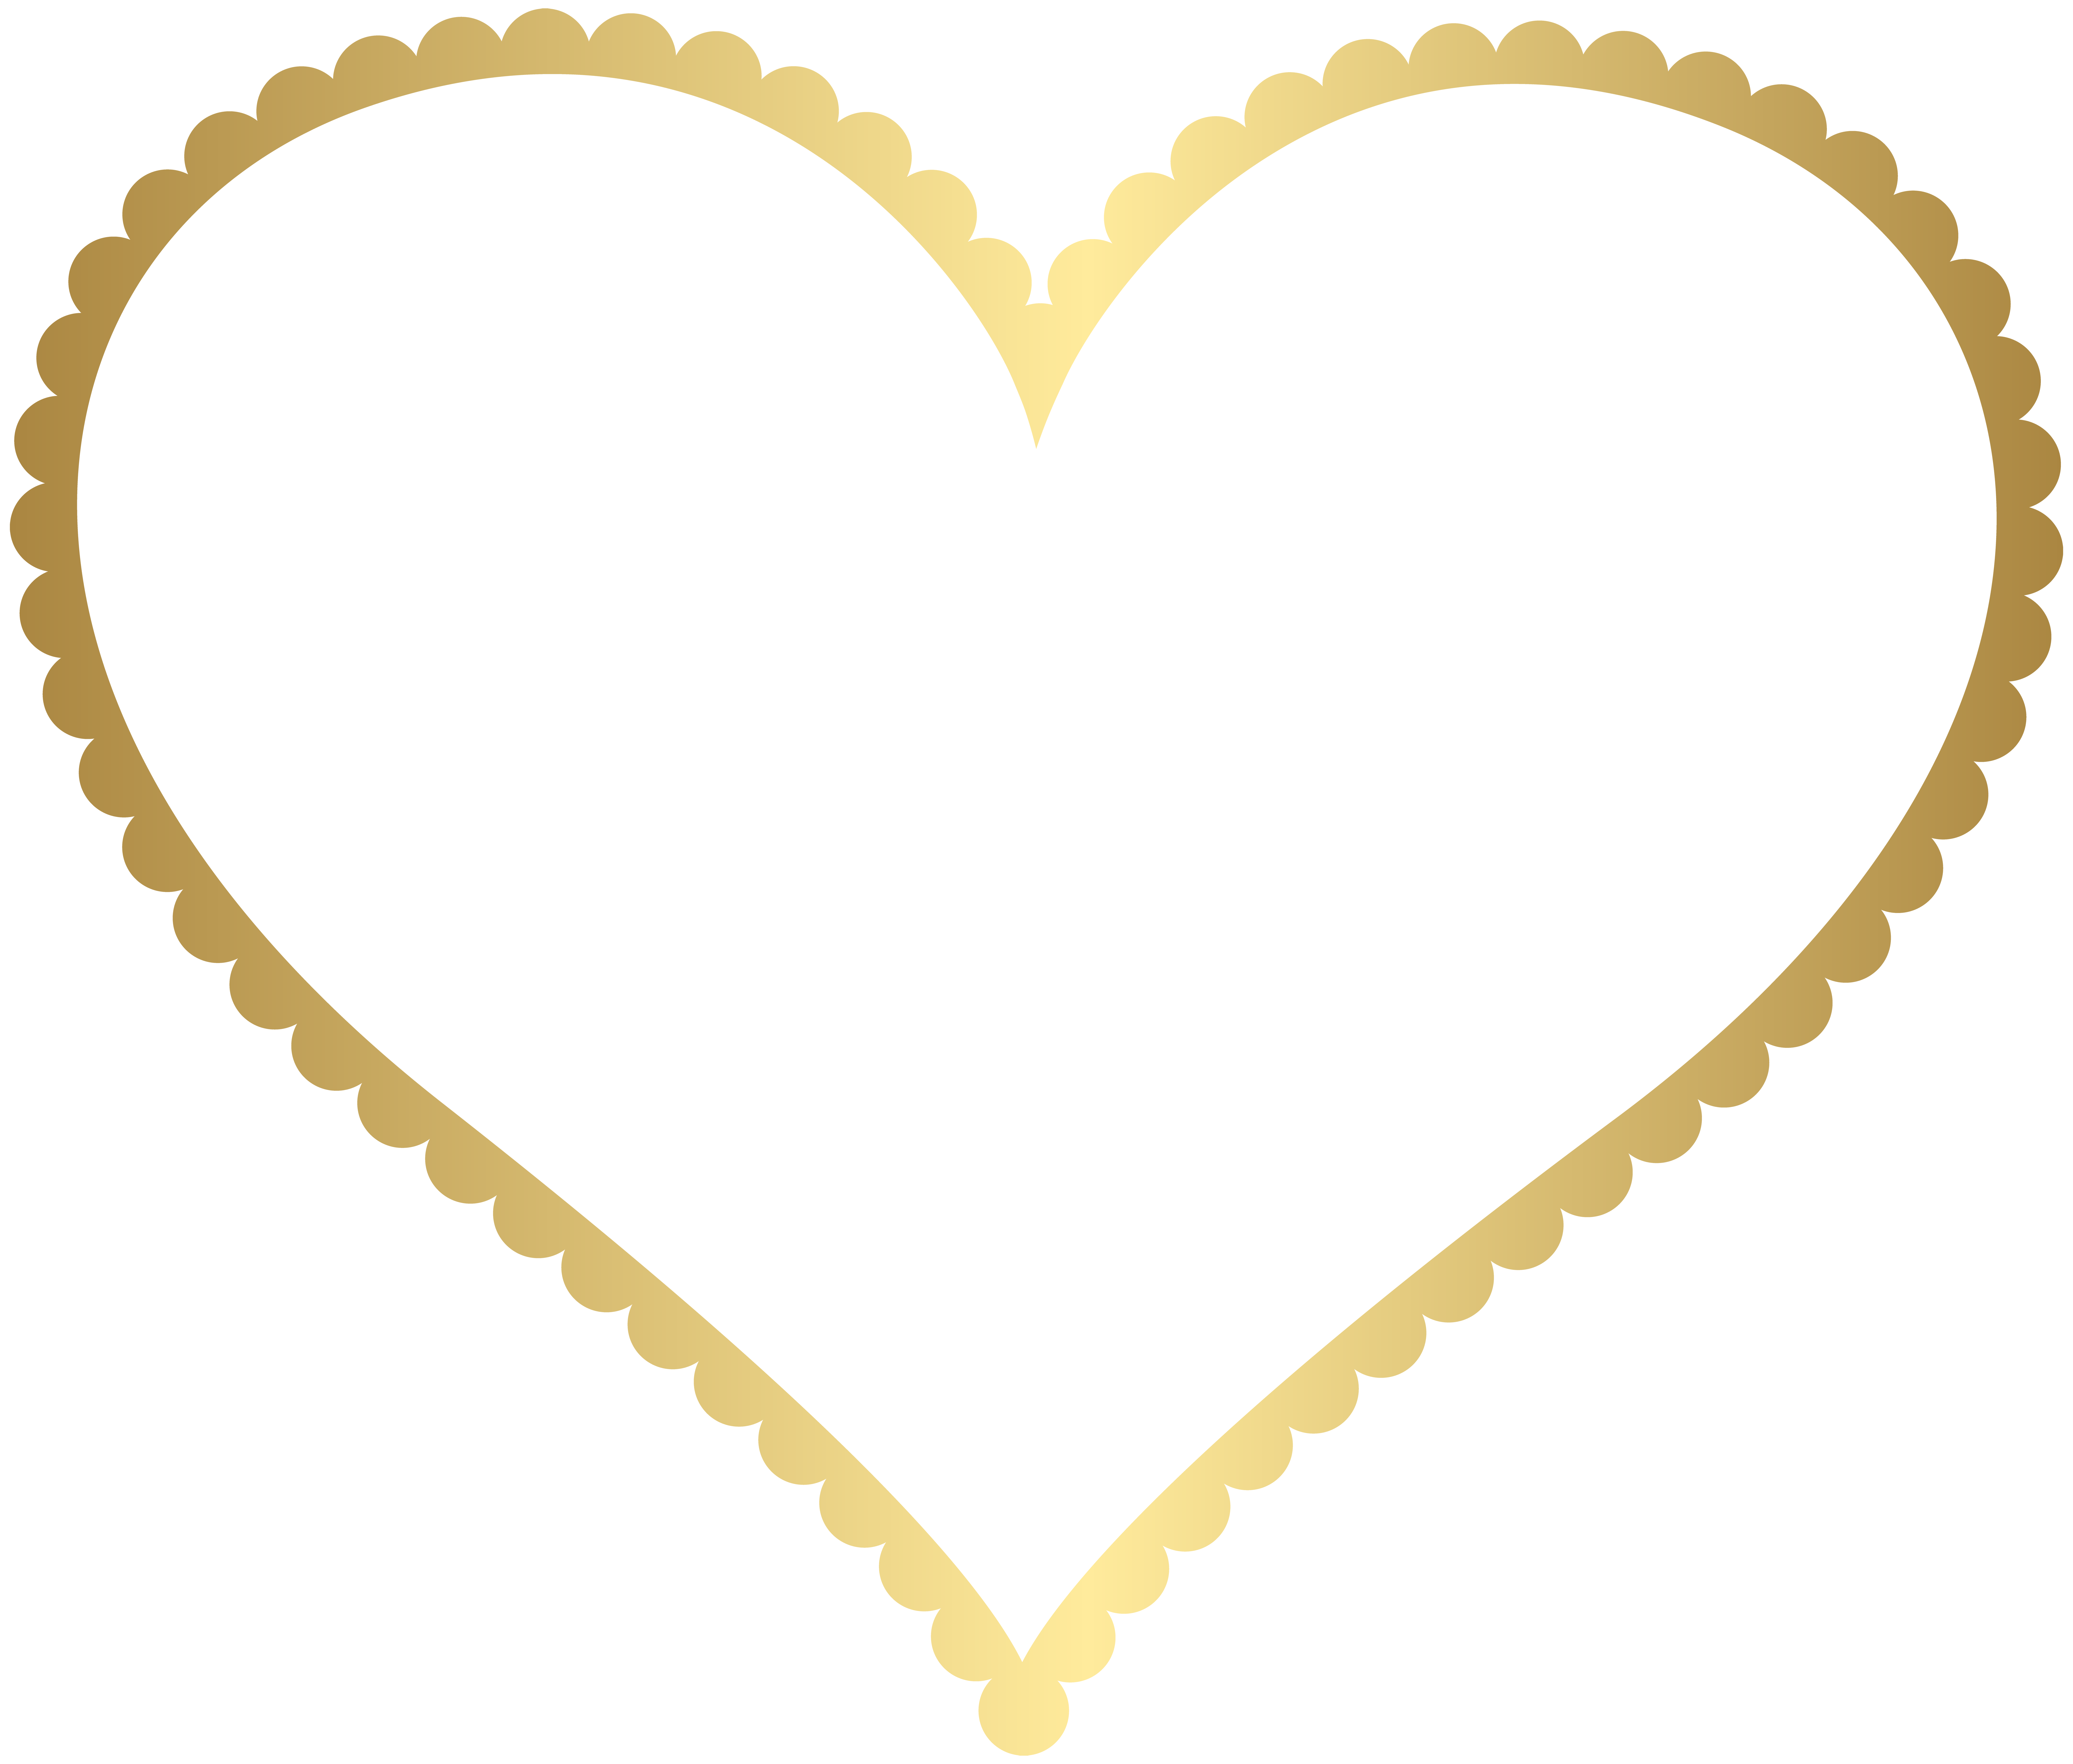 vector free Clipart hearts borders. Gold heart border frame